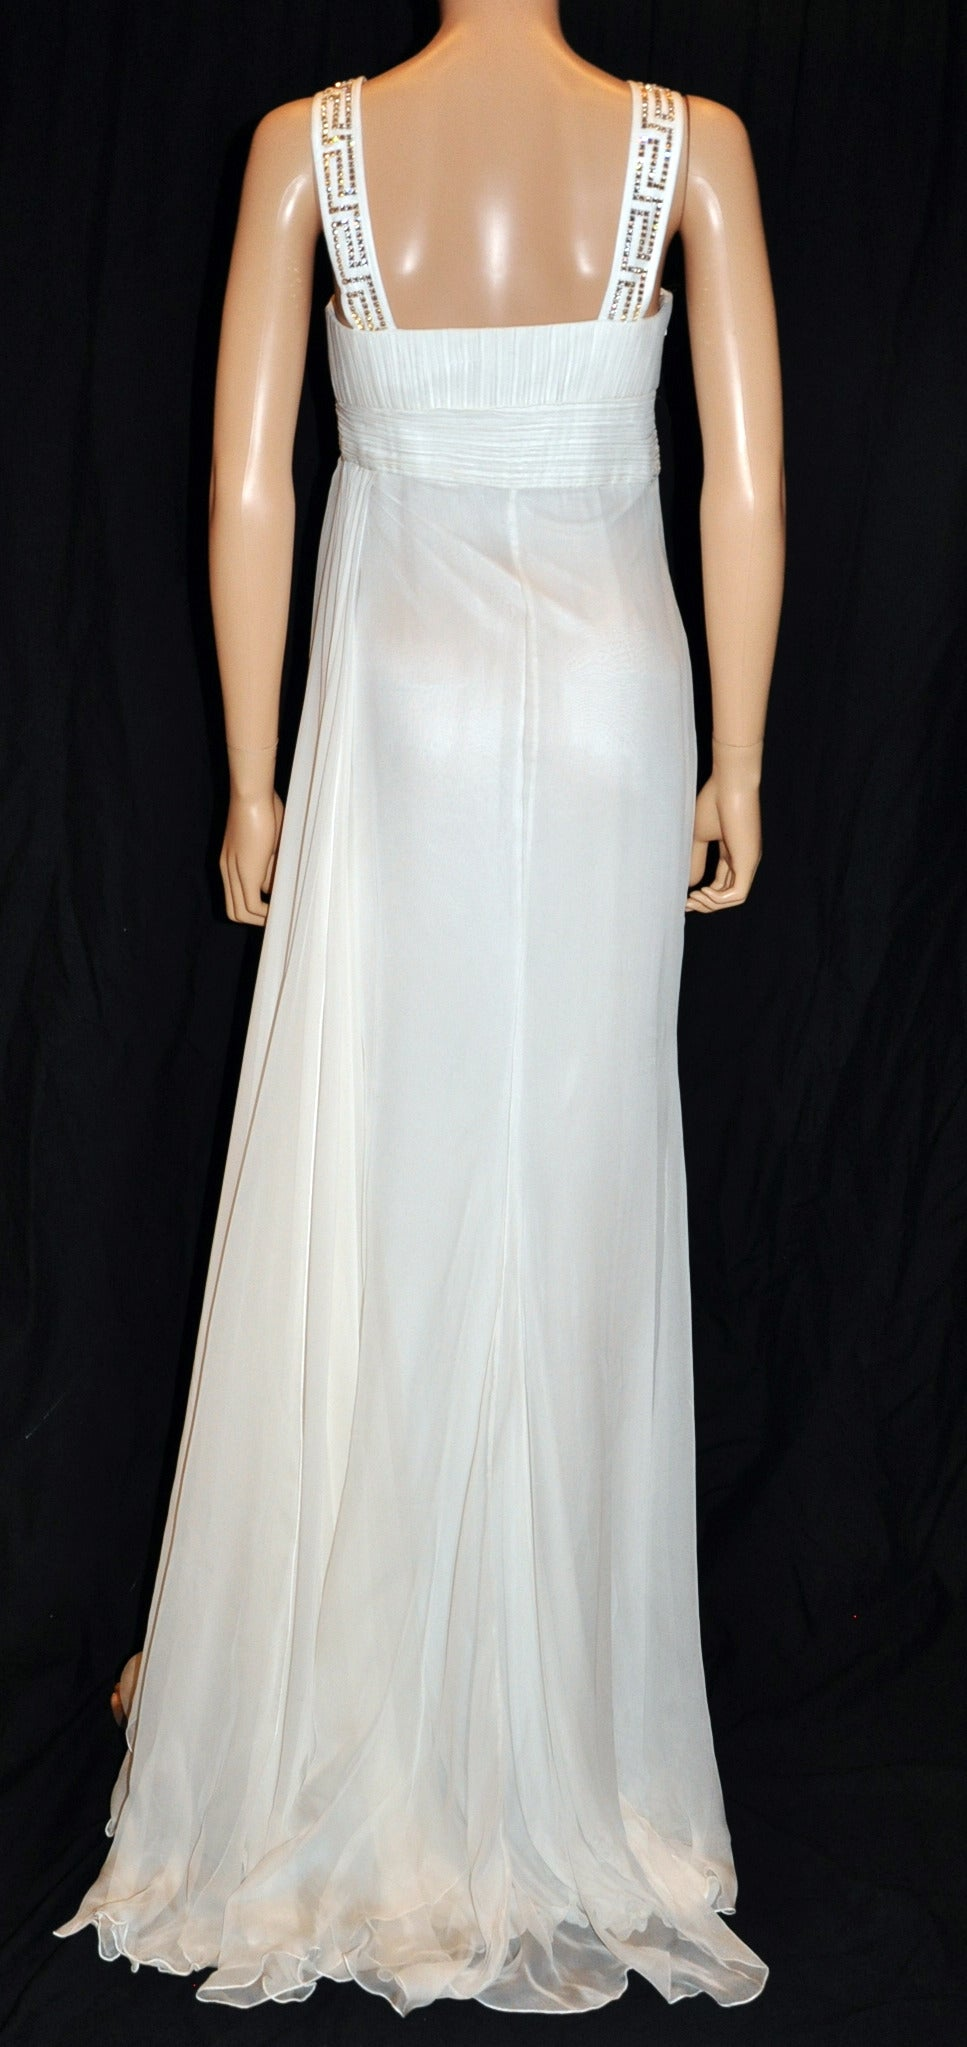 New Versace Crystal Embellished White Silk Gown 8